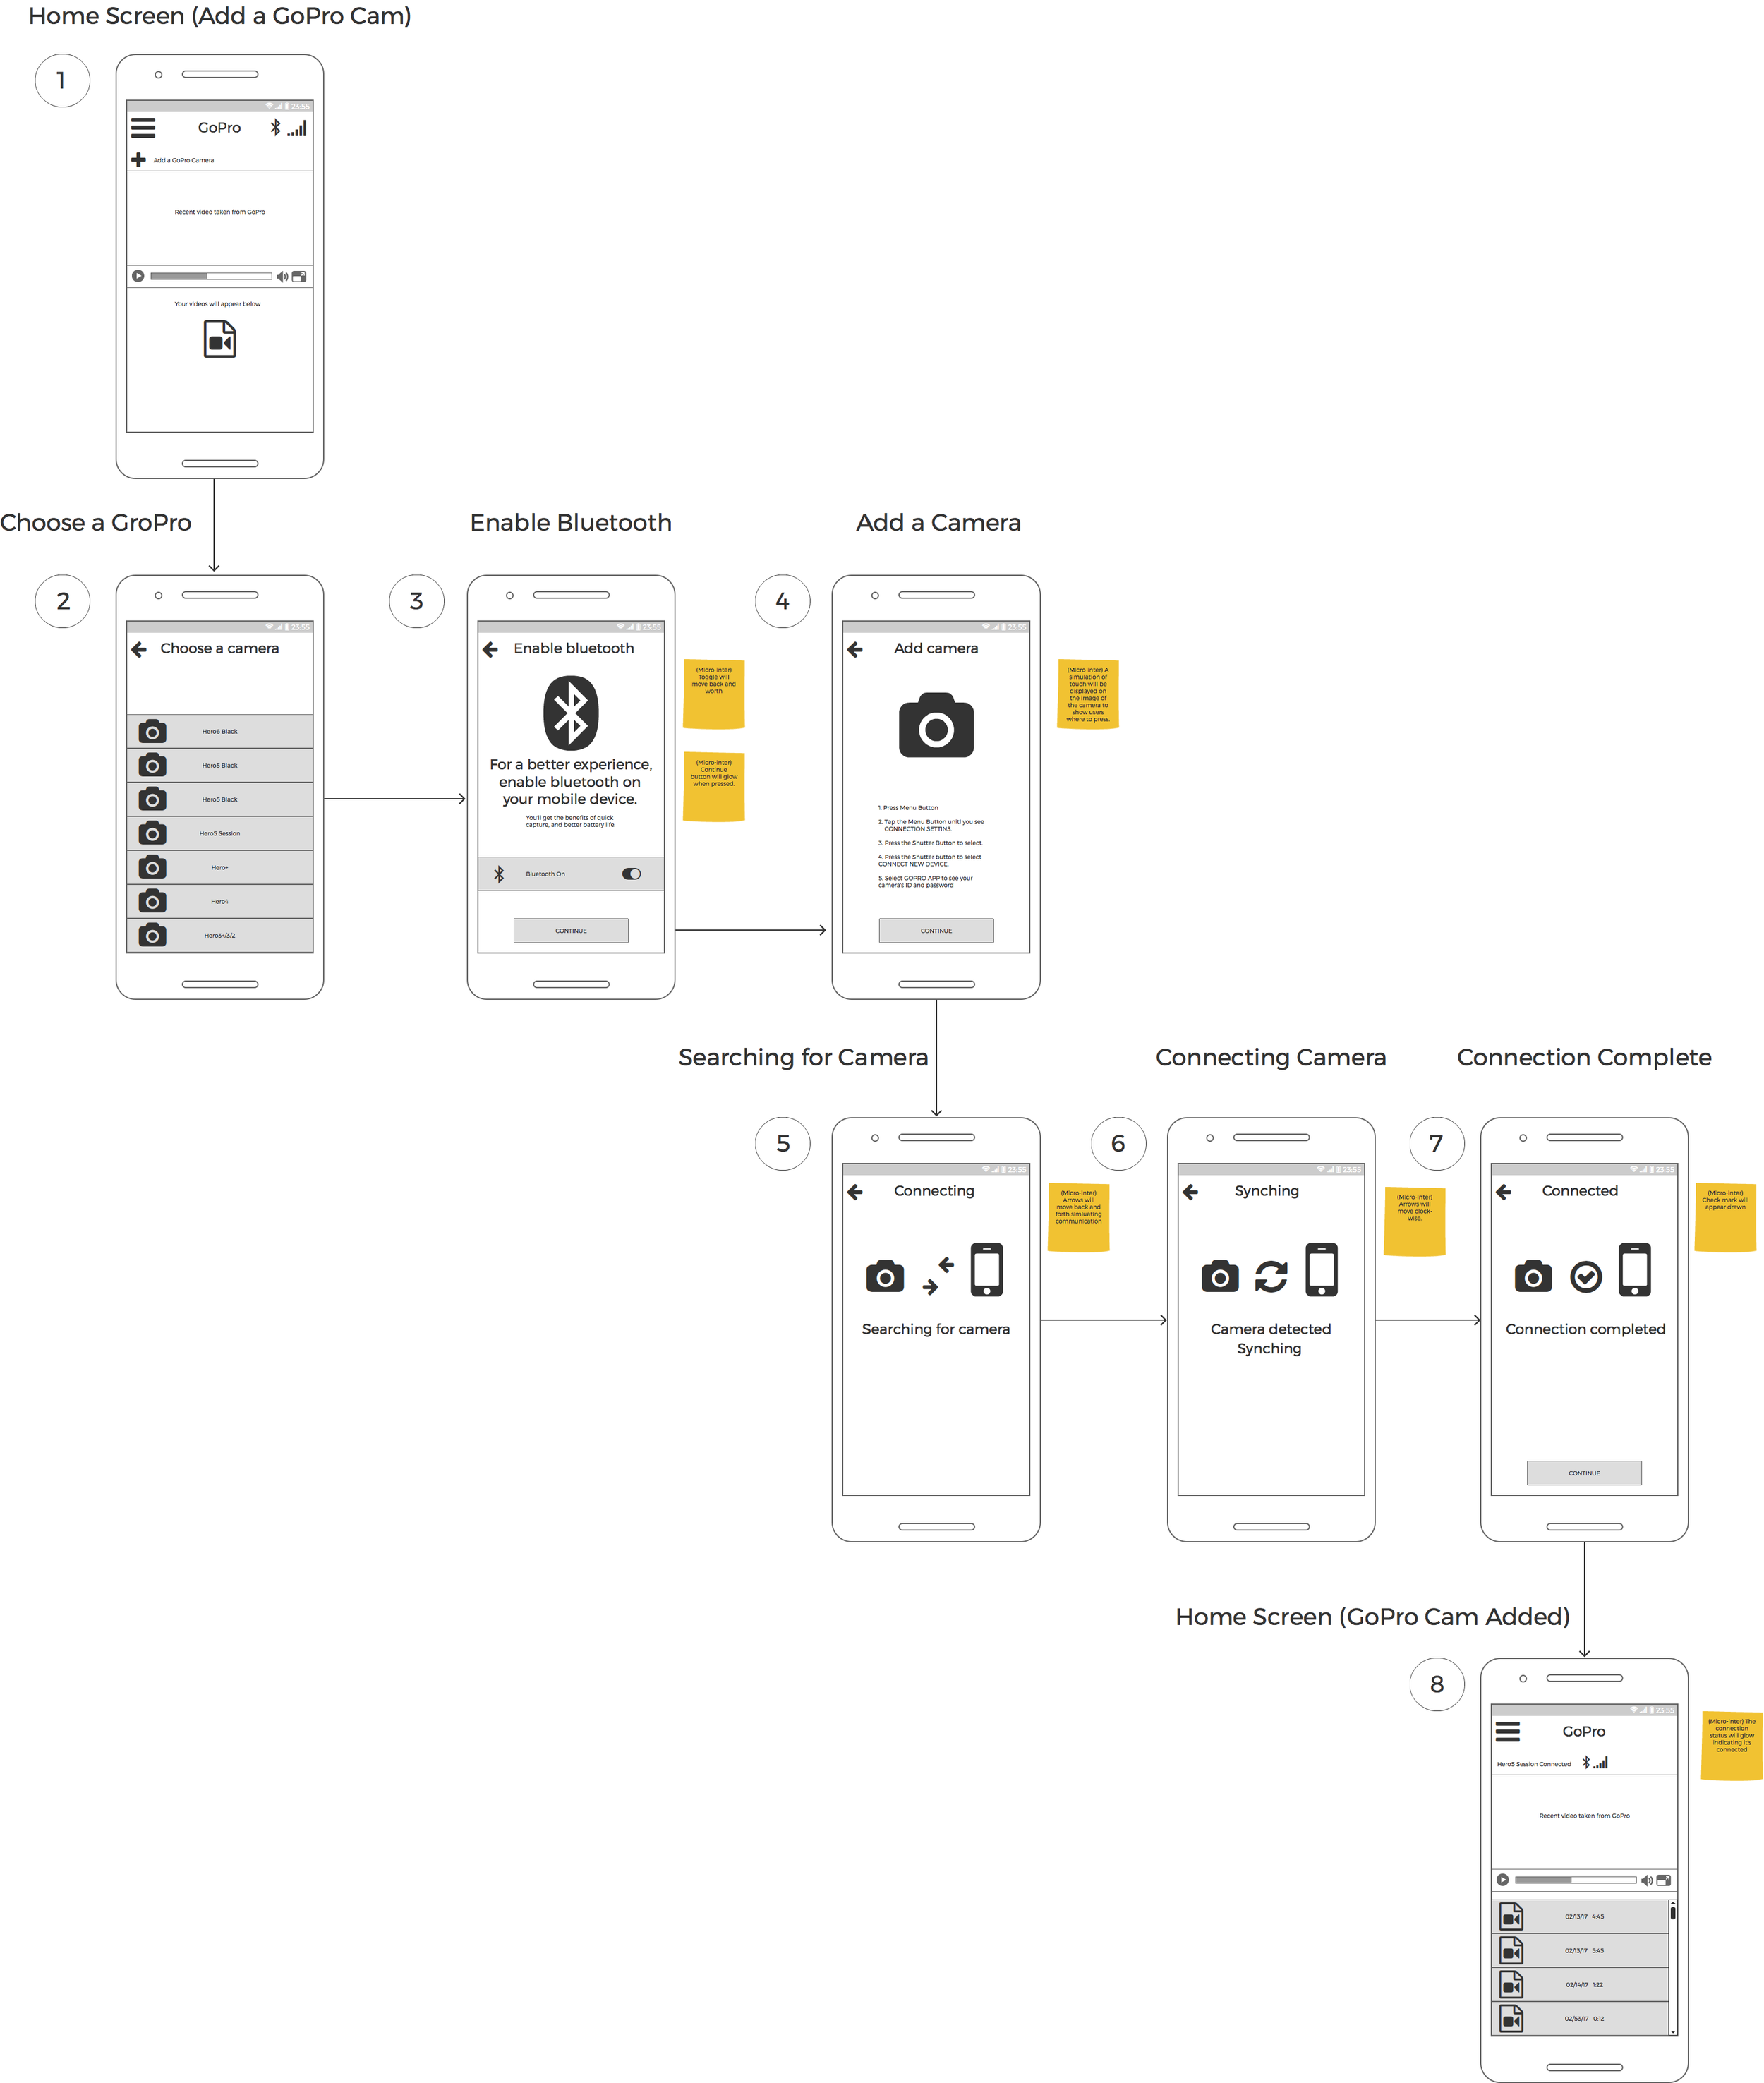 User flow for synching GoPro Camera with app.